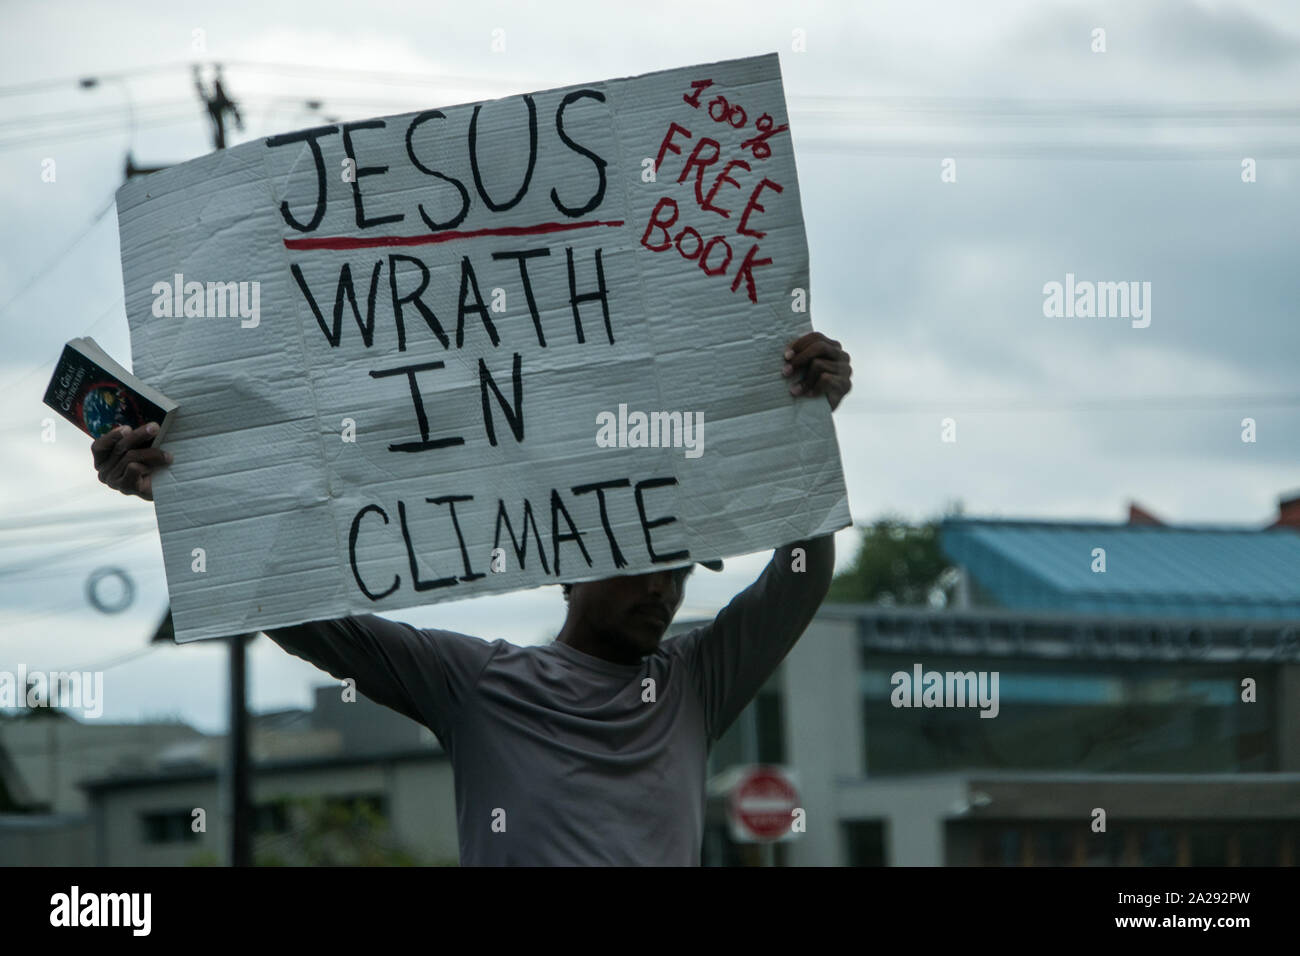 Cherry Hill, New Jersey - September 30, 2019: A black male was seen standing by the side of a busy road with a sign that says Jesus Wrath In Climate. Stock Photo